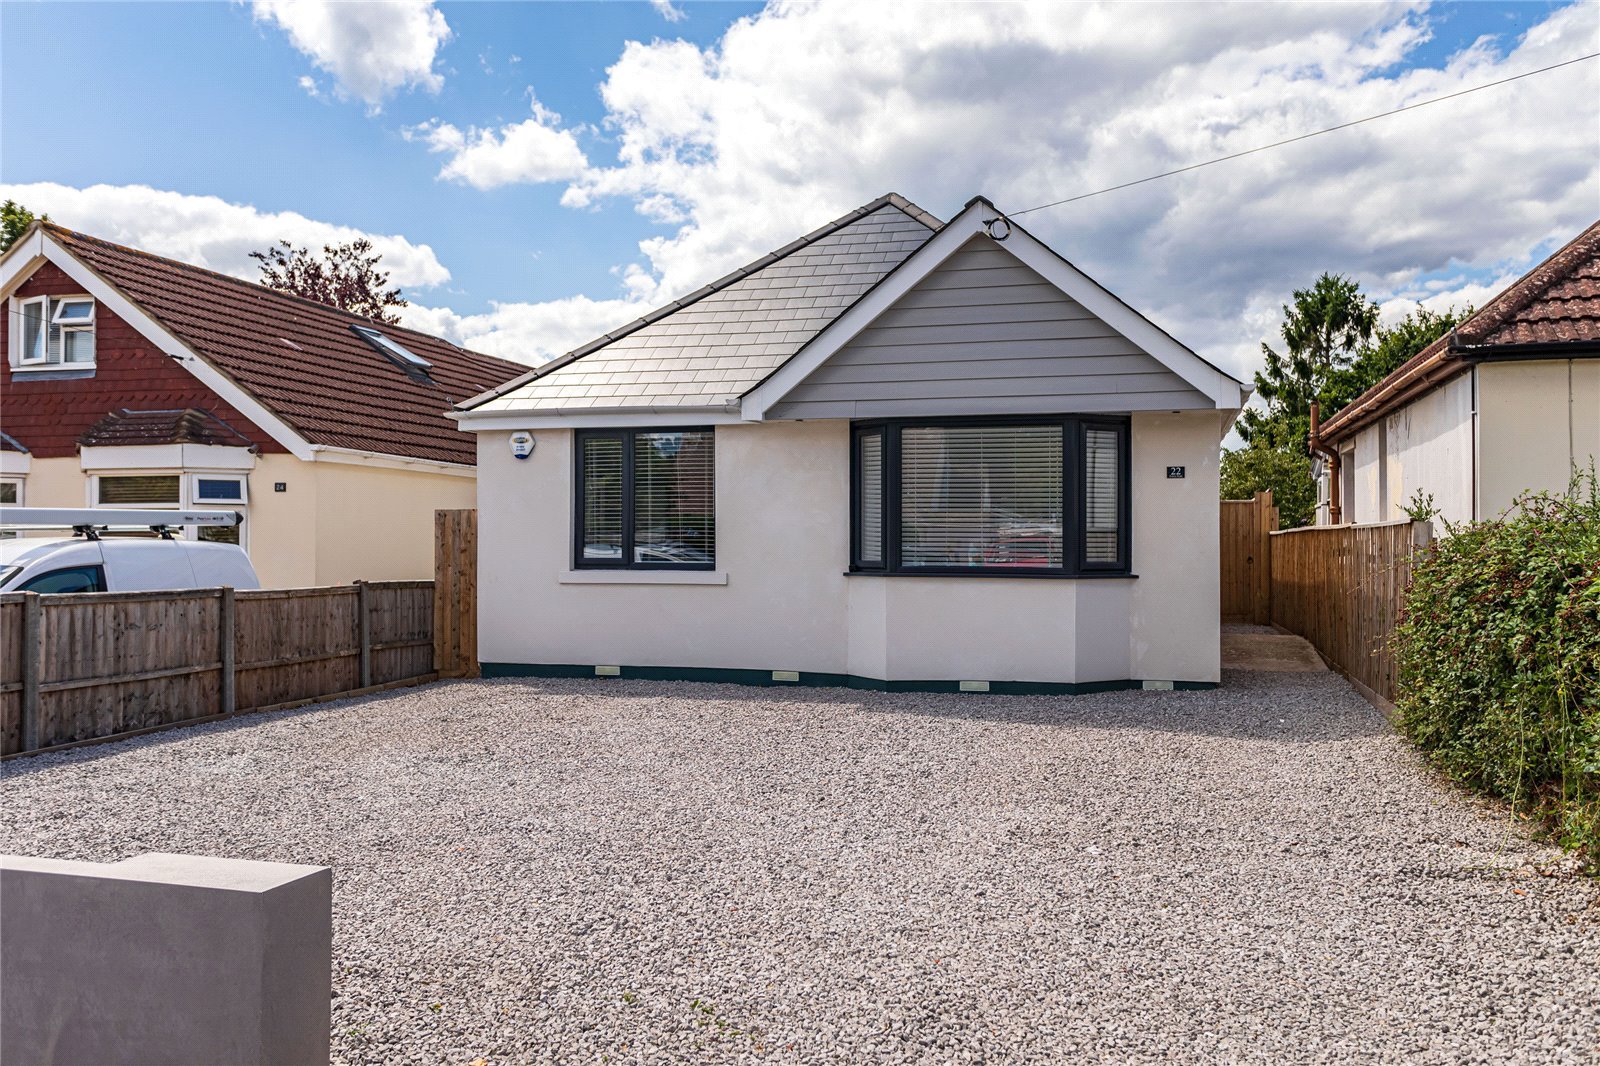 3 bed bungalow for sale in Pottery Road, Whitecliff - Property Image 1